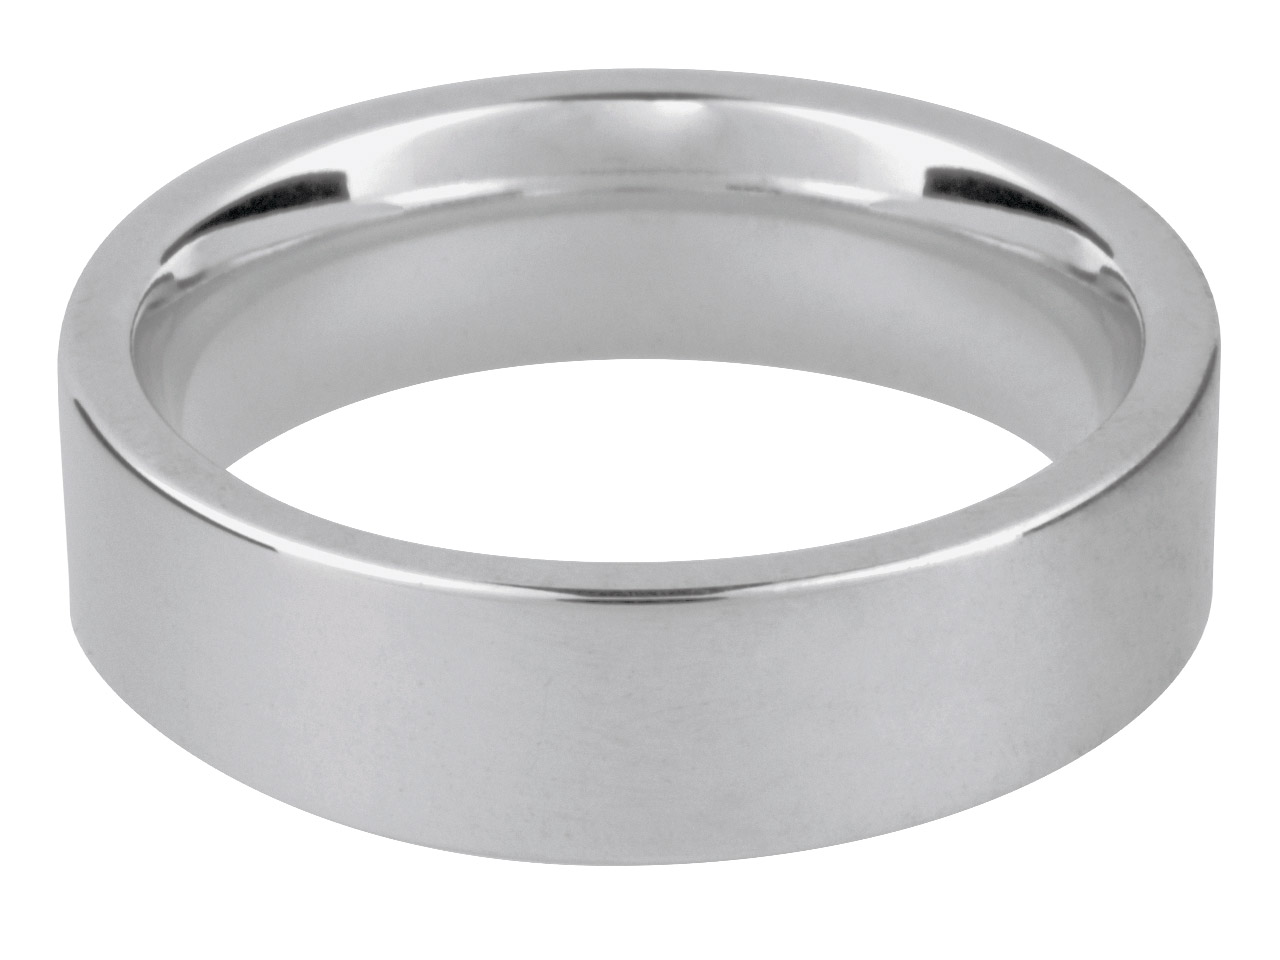 Silver Easy Fit Wedding Ring 4.0mm, Size N, 4.4g Heavy Weight,          Hallmarked, Wall Thickness 1.86mm